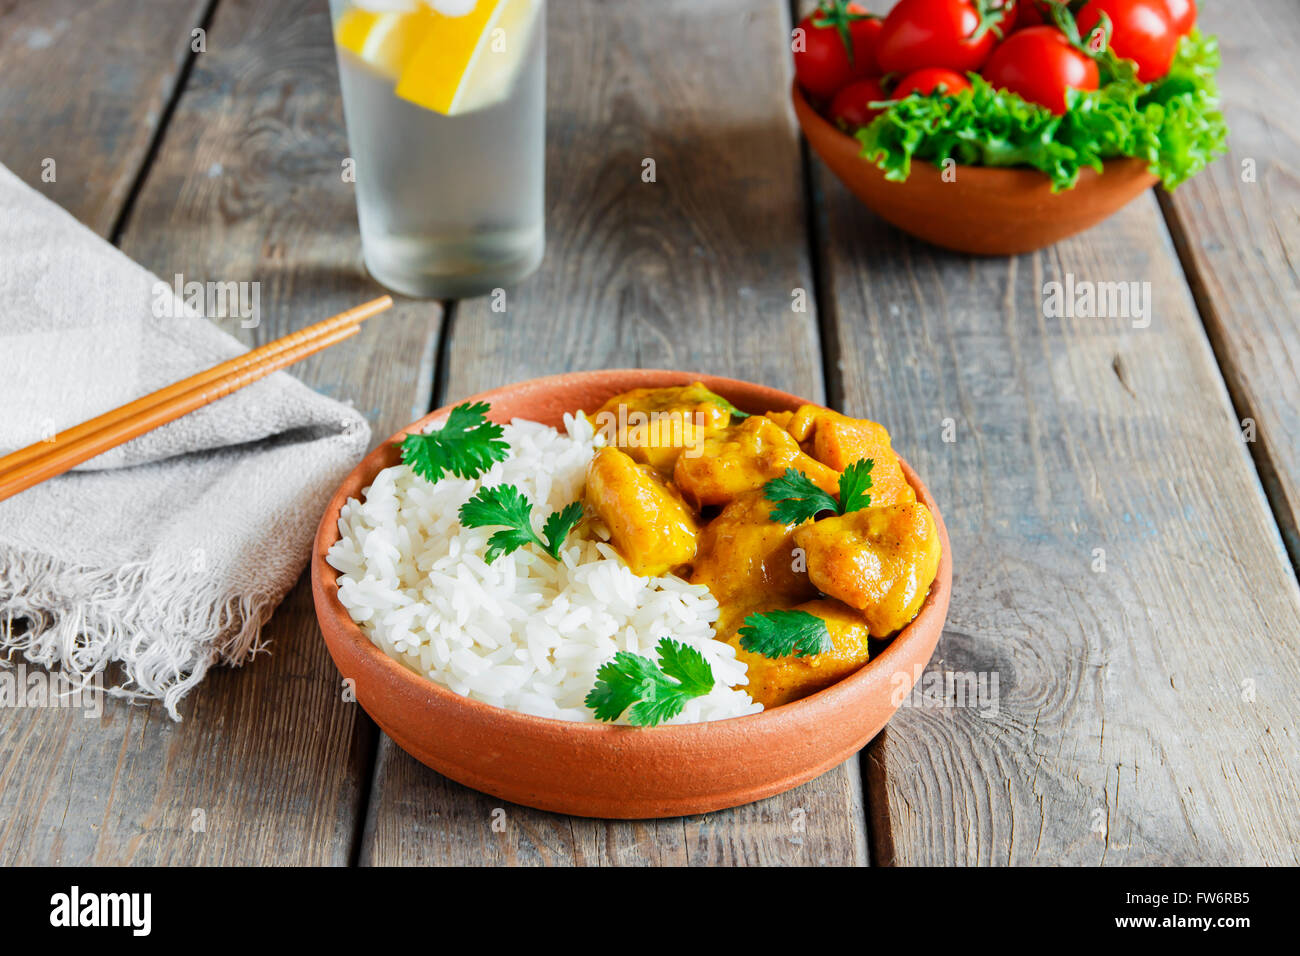 Curry de pollo con arroz en una superficie de madera Imagen De Stock